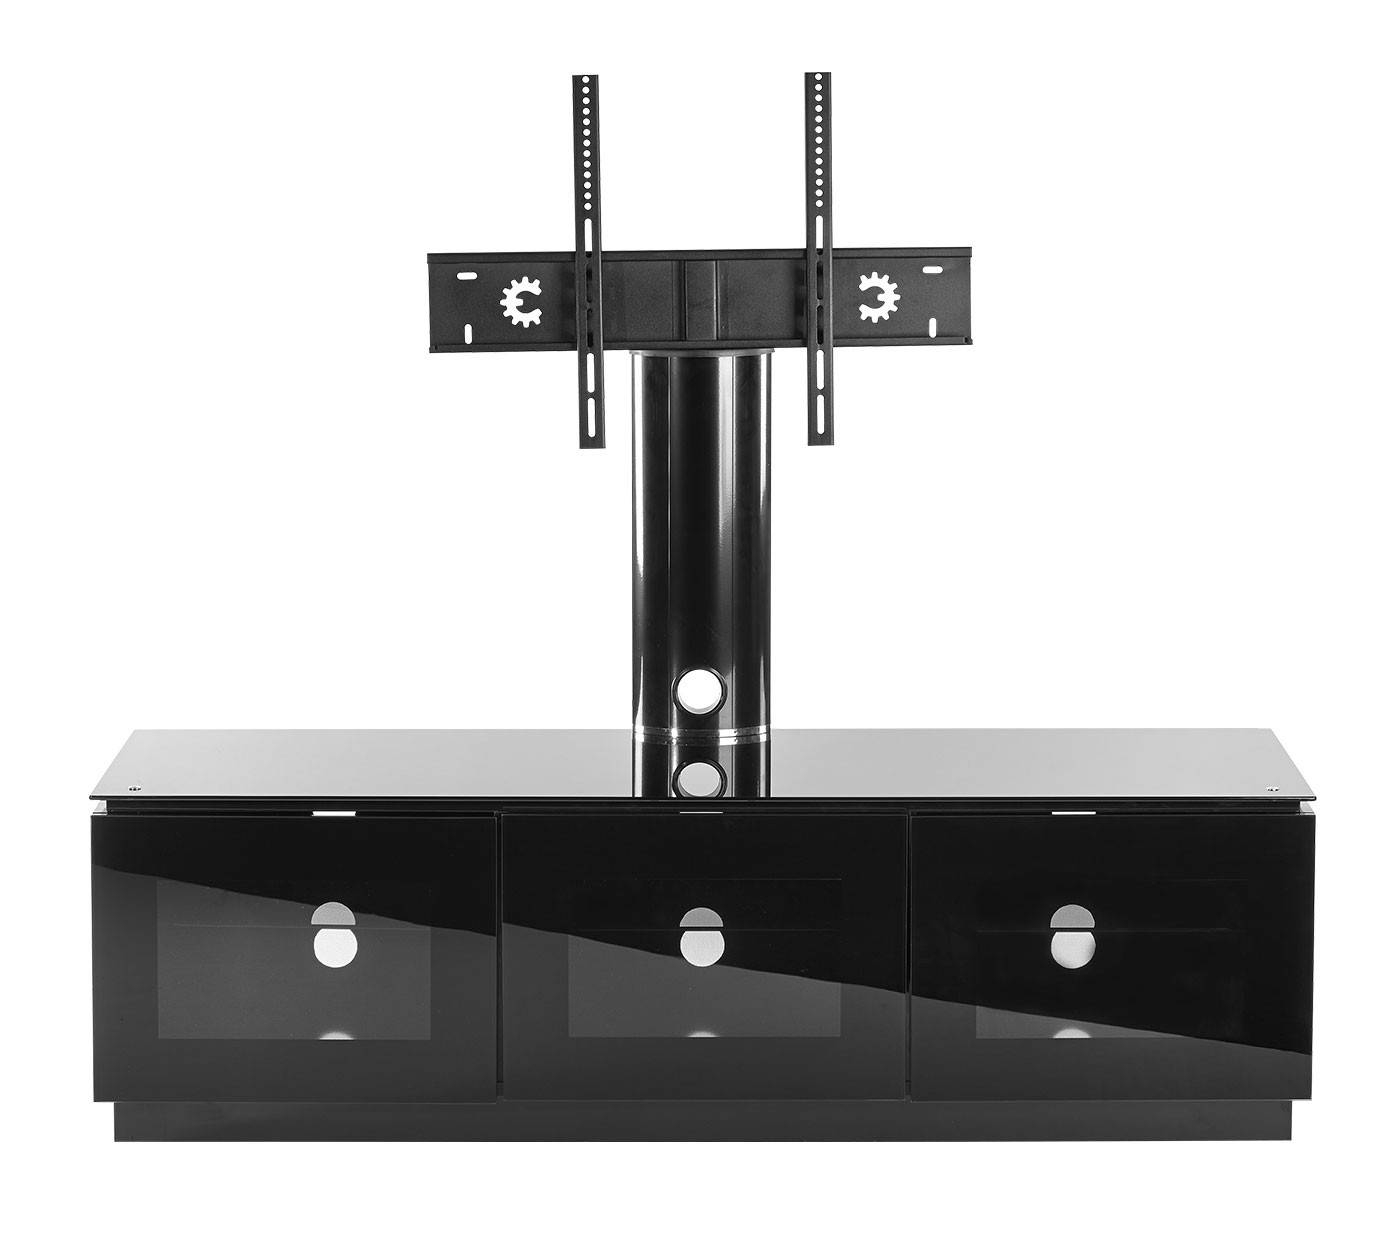 Black Tv Cabinet With Mount For Up To 65 Inch Tv | Mmt-D1500-Xarm with regard to Black Gloss Tv Cabinet (Image 7 of 15)